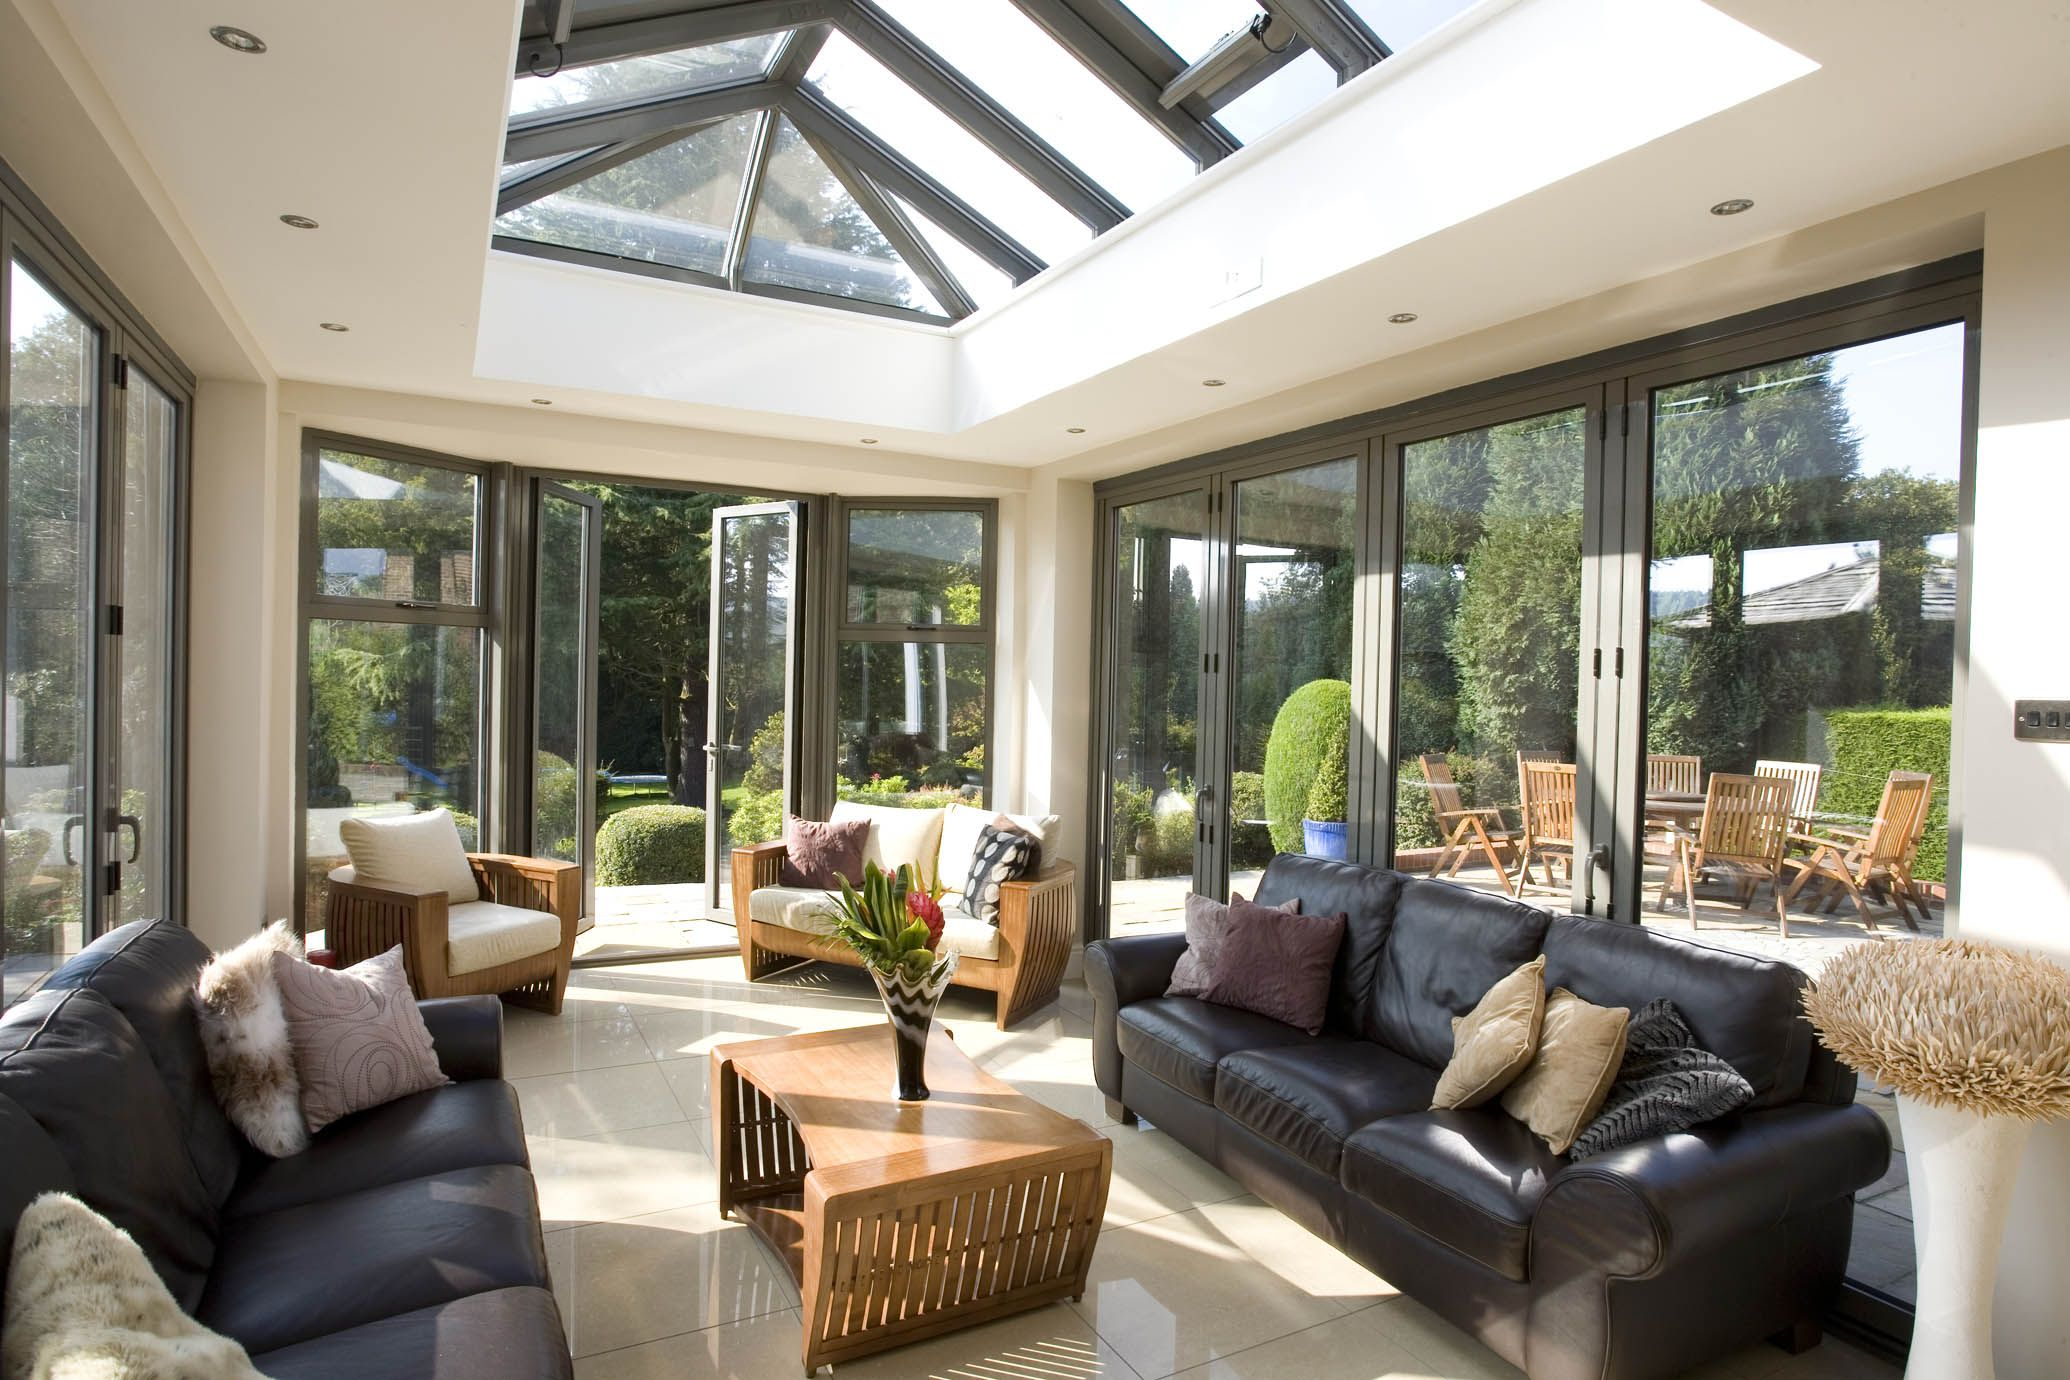 modern conservatories - Google Search | Conservatory ideas ...